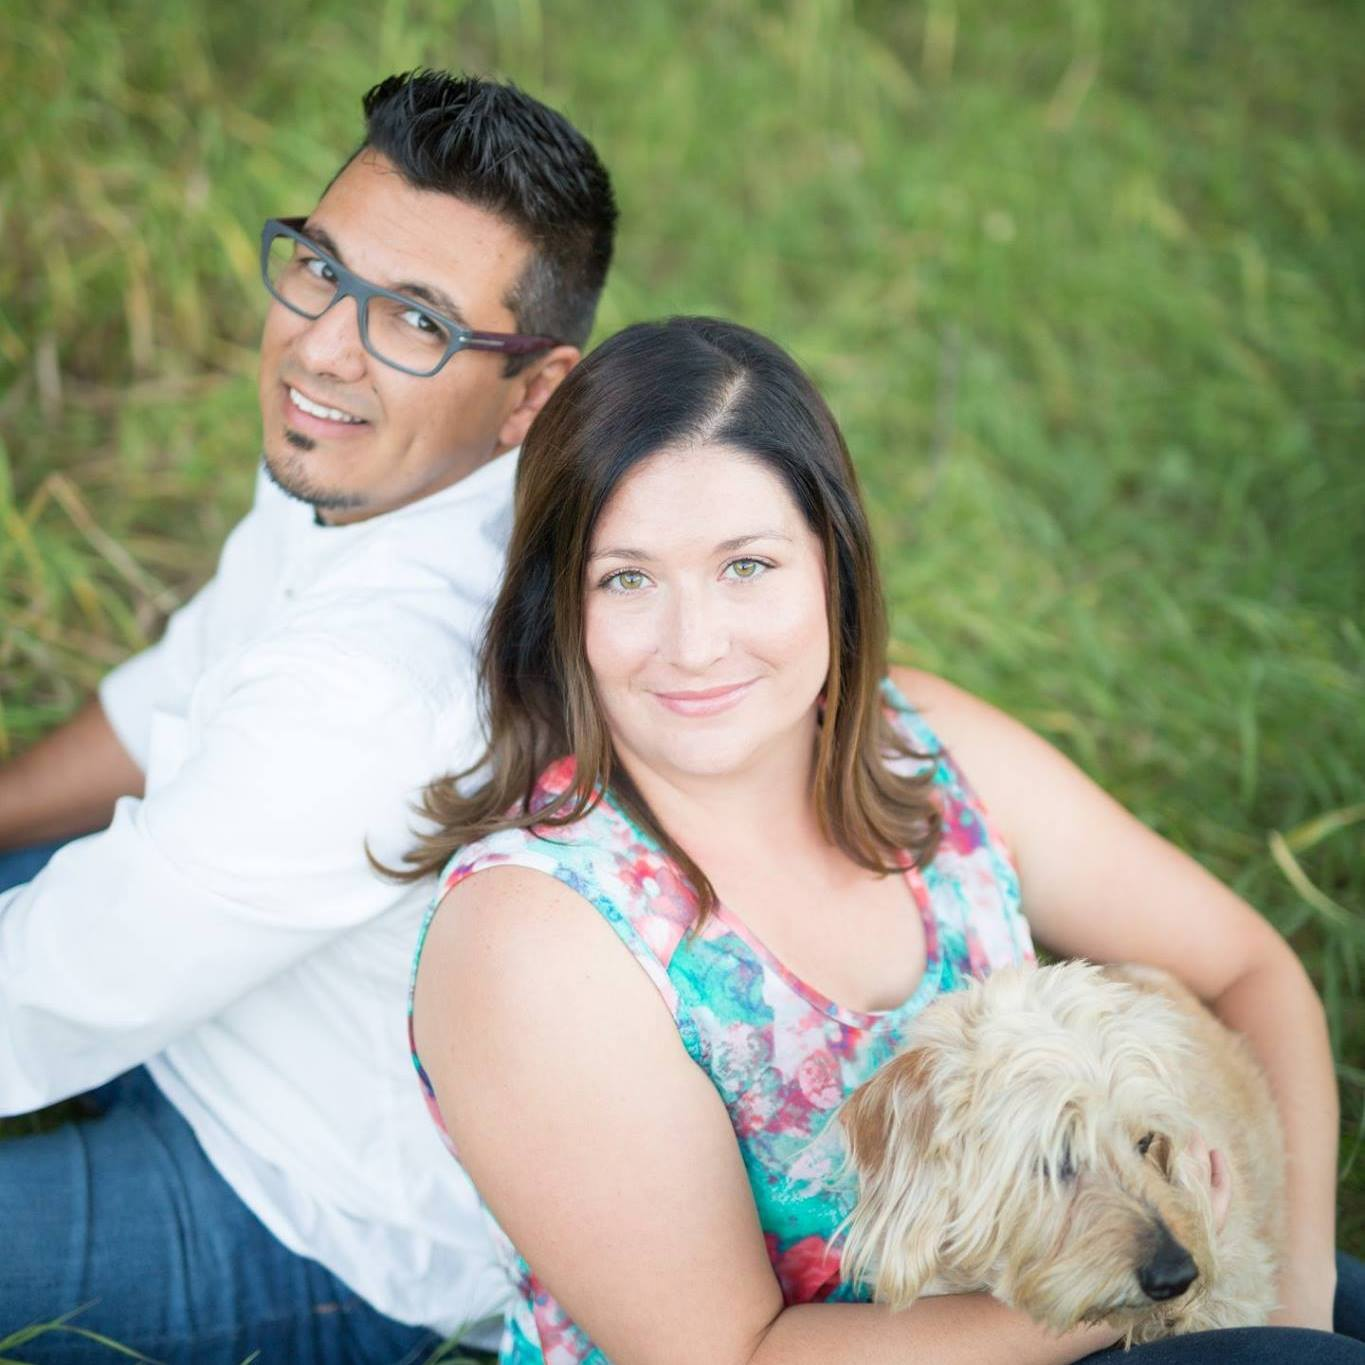 Youth Director Eric Chavez and his wife, Shanna, with their dog, Buster